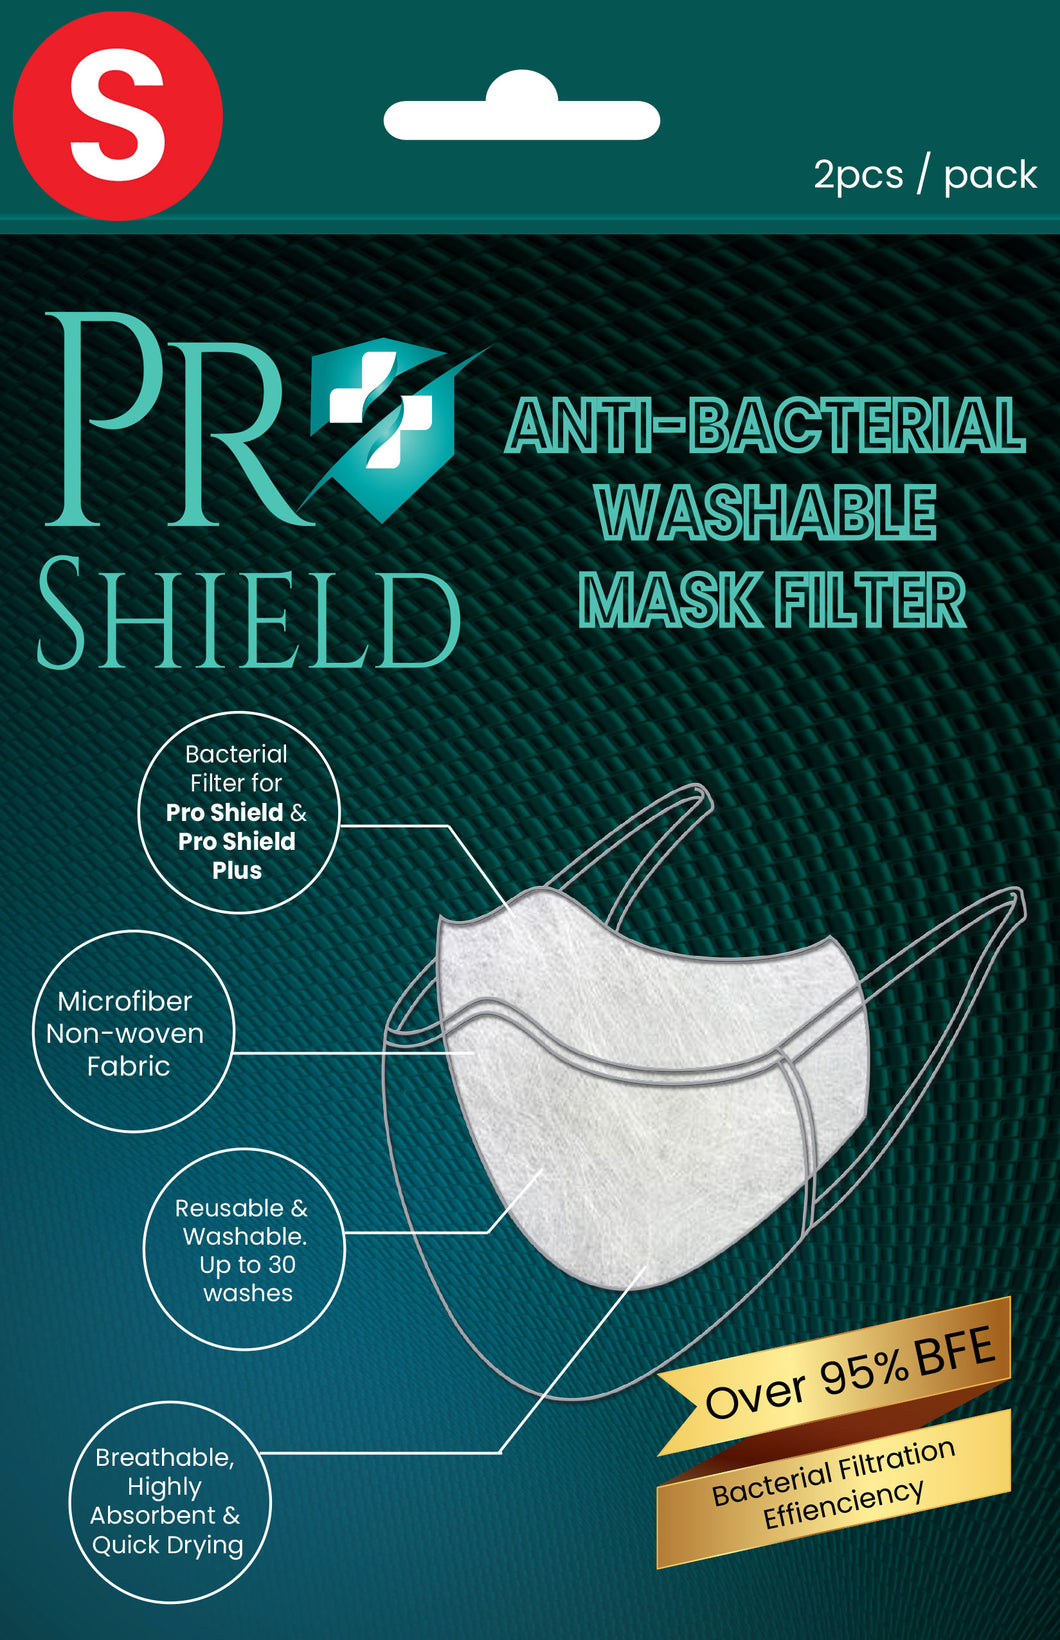 S size | ProShield Antibacterial Reusable Nanofiber Filter (2 sheets/pack)